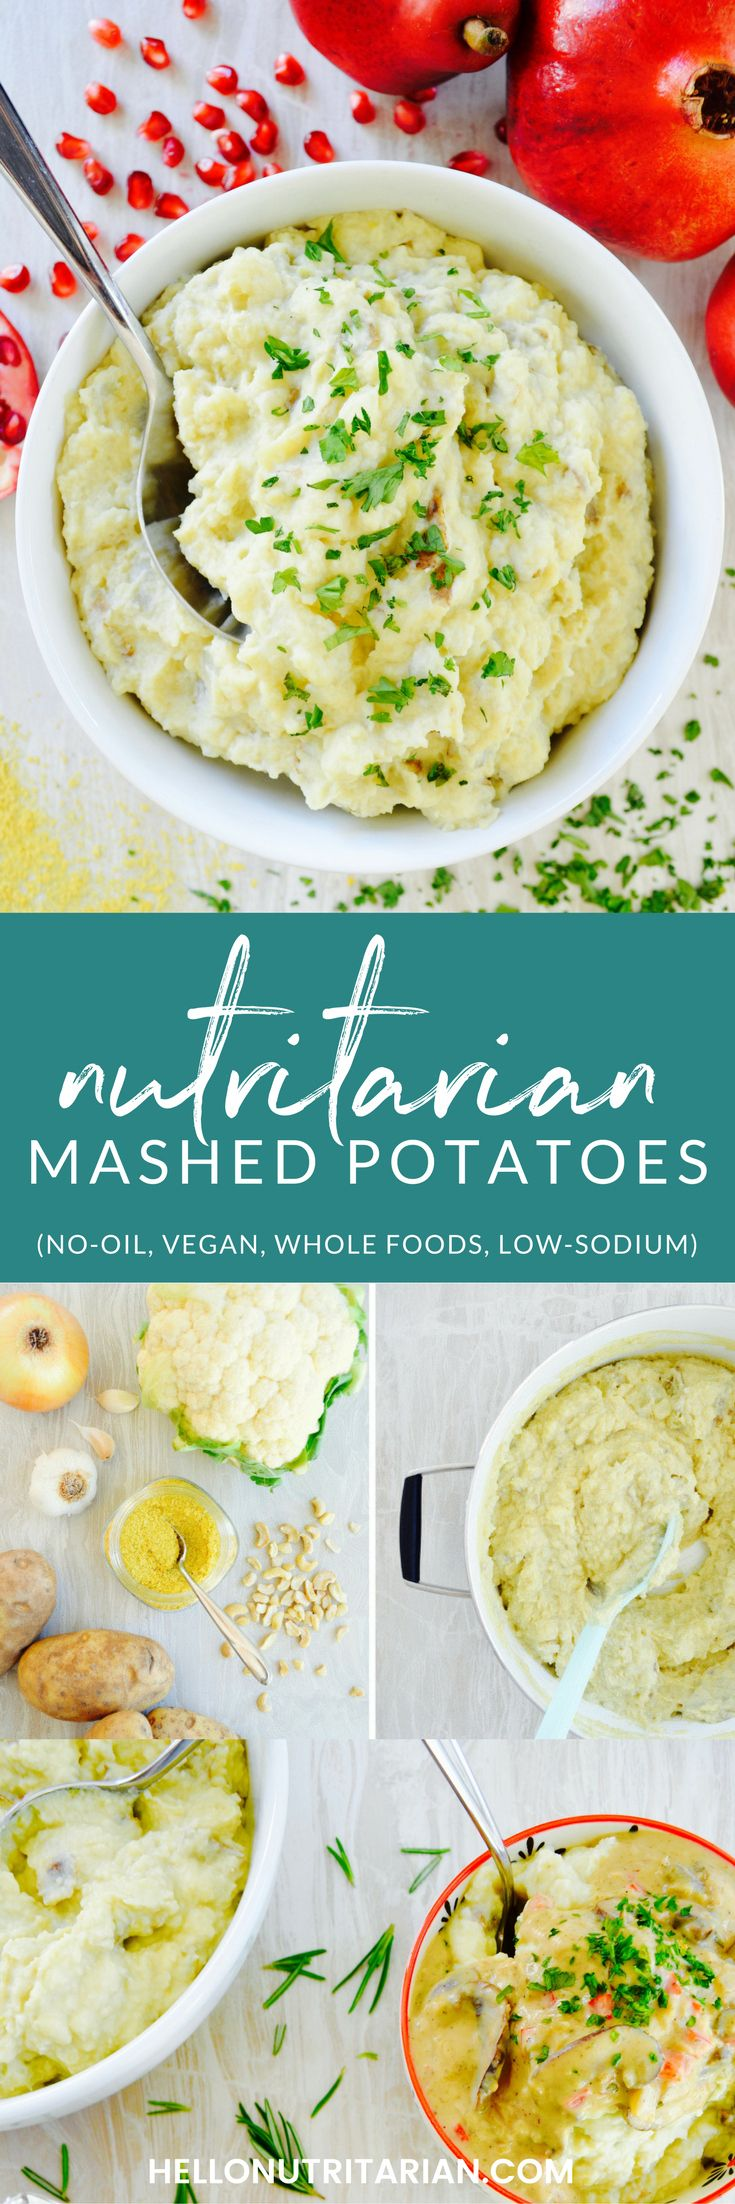 Nutritarian Mashed Potatoes recipe   vegan, oil-free, low-sodium, whole food plant based.  A cleaner alternative to the comfort food classic using cauliflower and cashews to provide richness and creaminess without dairy!  Try this recipe as a healthy Thanksgiving side dish!  Perfect when you're on Dr. Fuhrman's 6 week Eat to Live plan!  Click through for the printable recipe!  xo, Kristen #thanksgivingsidedish #healthythanksgiving #mashedpotatoes #oilfreevegan #wfpbno